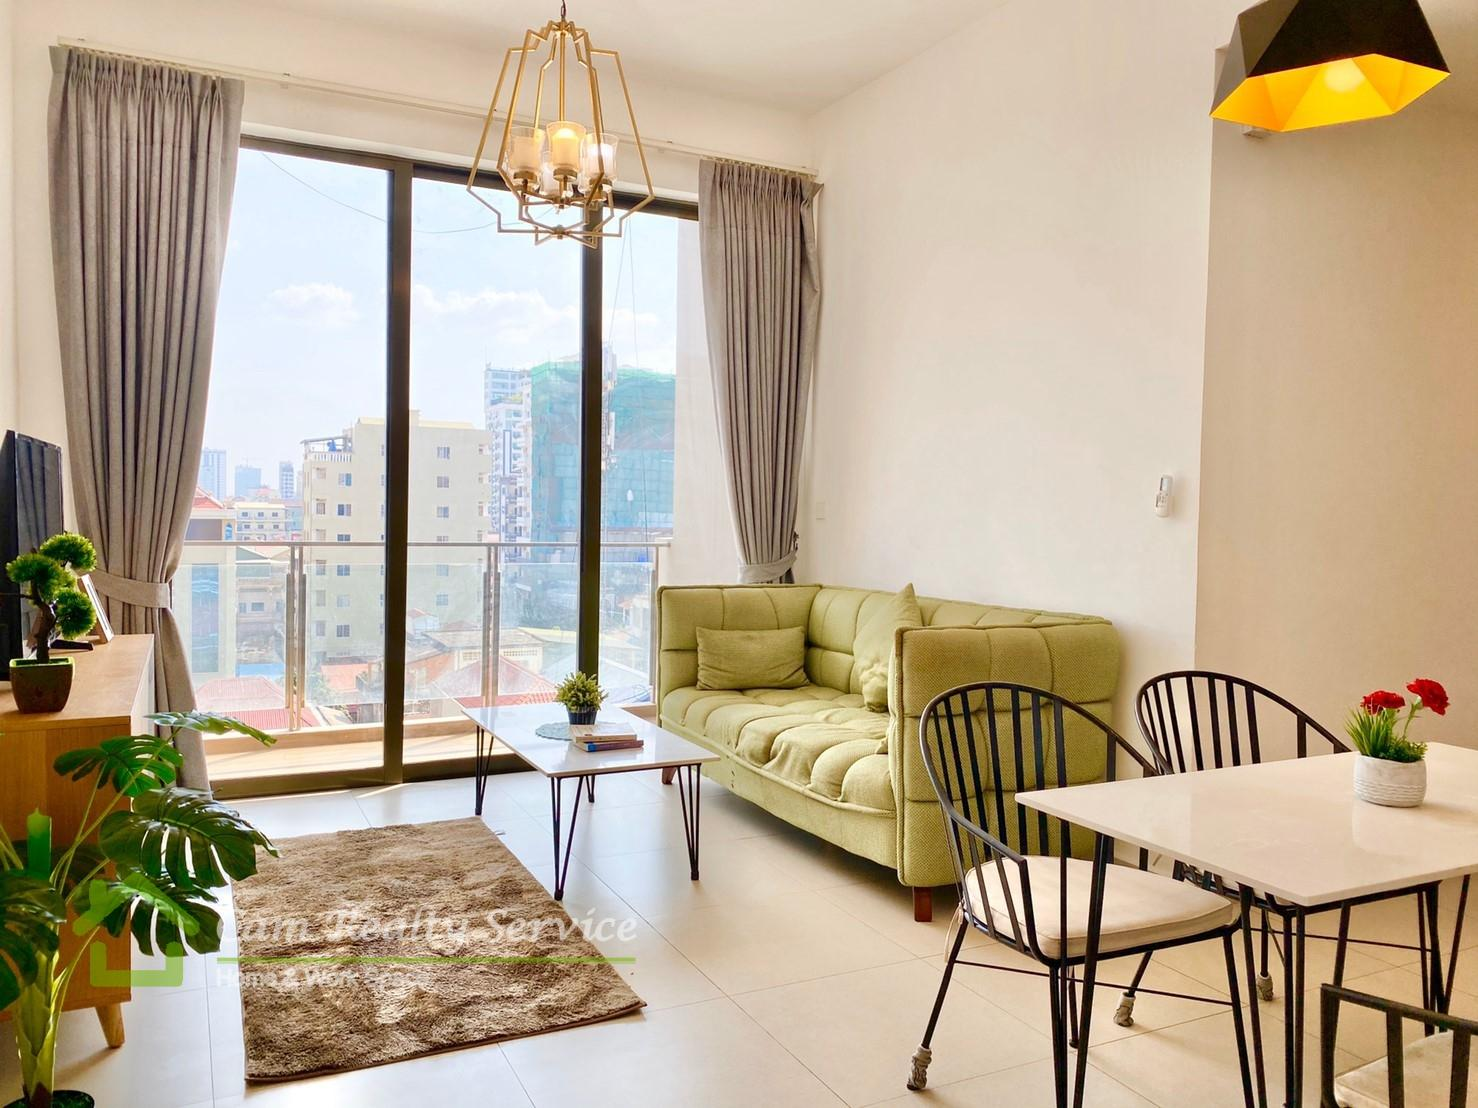 BKK3 area(Close to BKK1 area)  2  bedrooms apartment  750$/month up  Pool & Gym